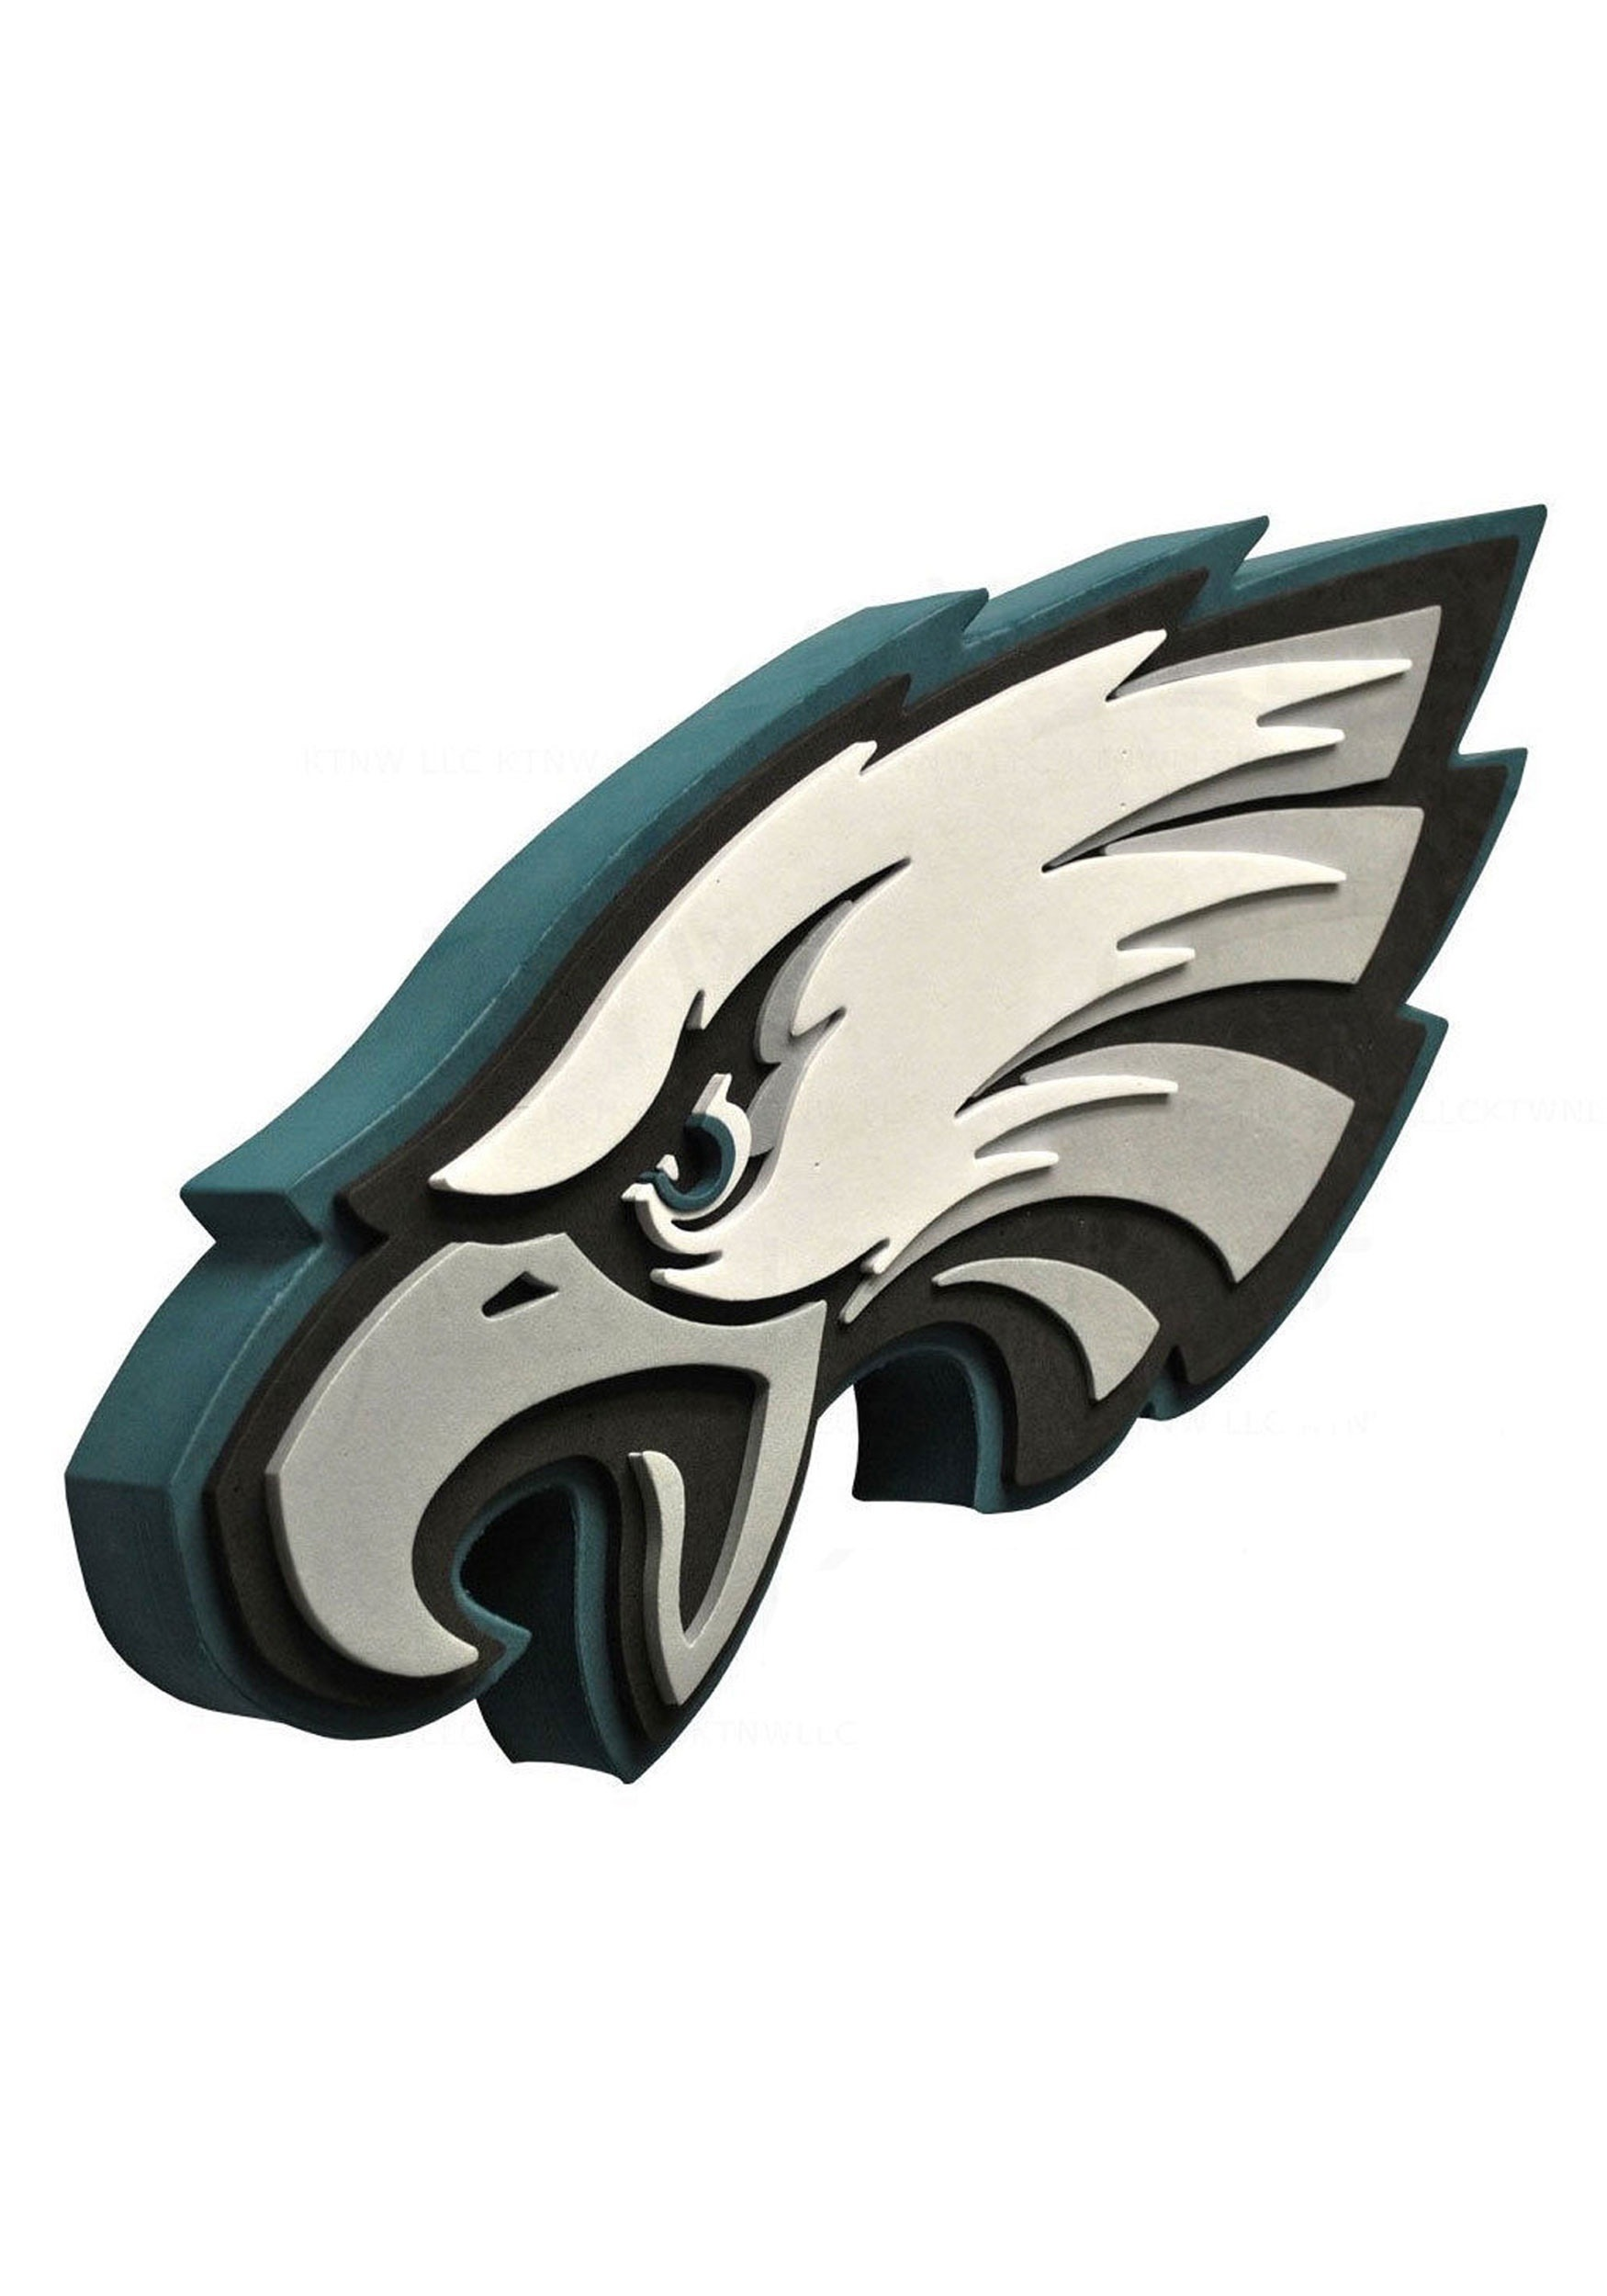 On Eagles Wings Was Philadelphia S Super Bowl Win Pre Ordained